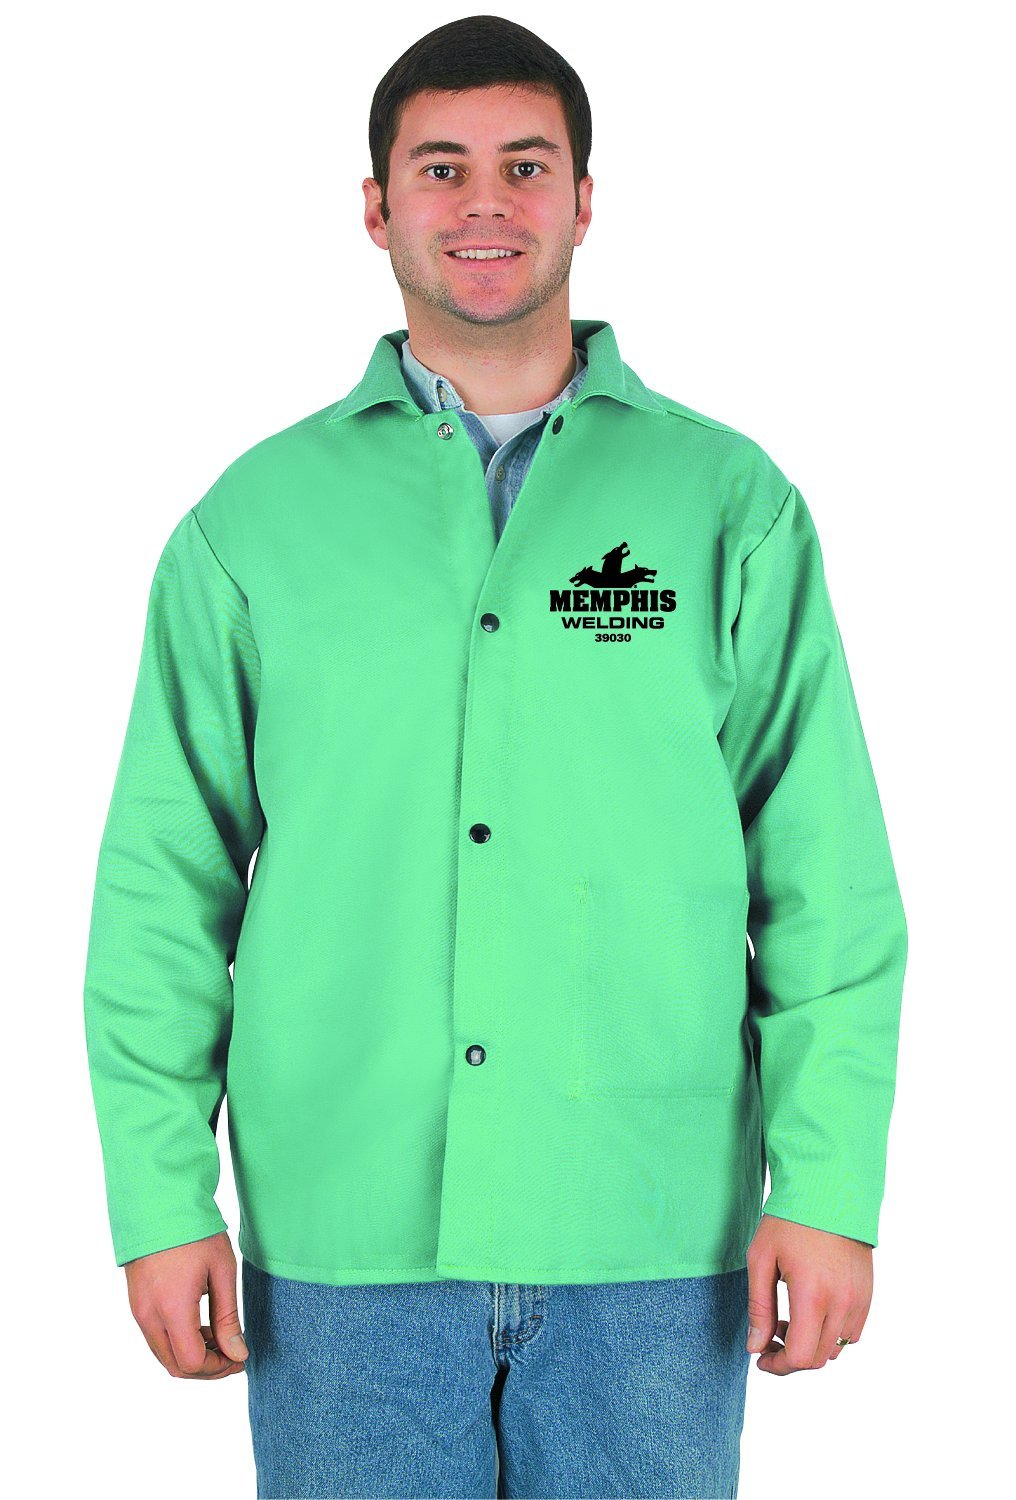 MCR Safety 39030X4 30-Inch Flame Resistant Cotton Fabric Welding Jacket with Inside Pocket, Green, 4X-Large by MCR Safety (Image #1)